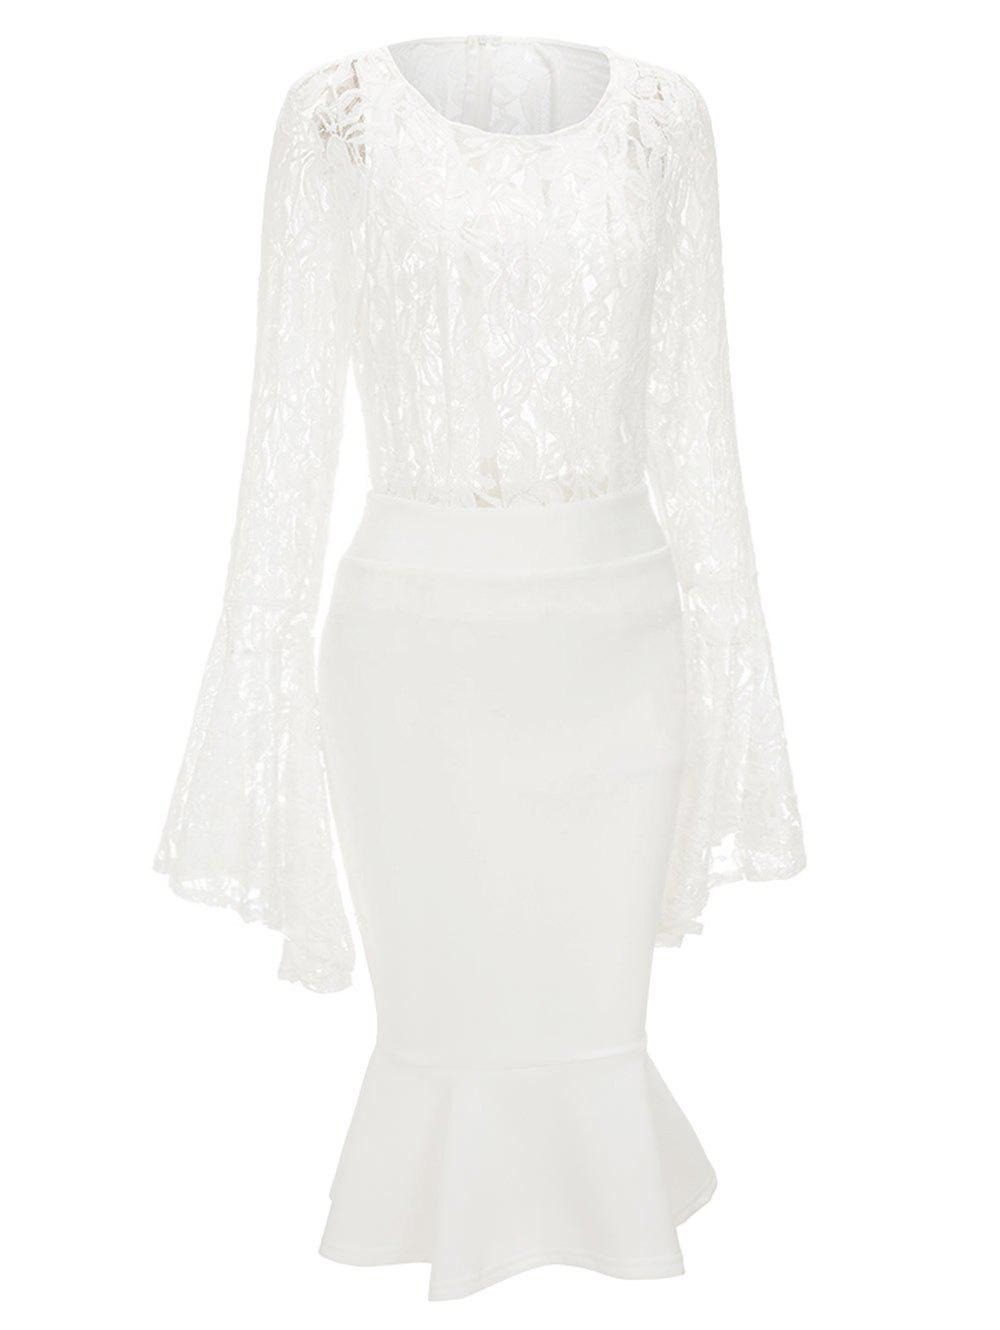 Bell Sleeve Lace Top and Mermaid Skirt - WHITE 2XL